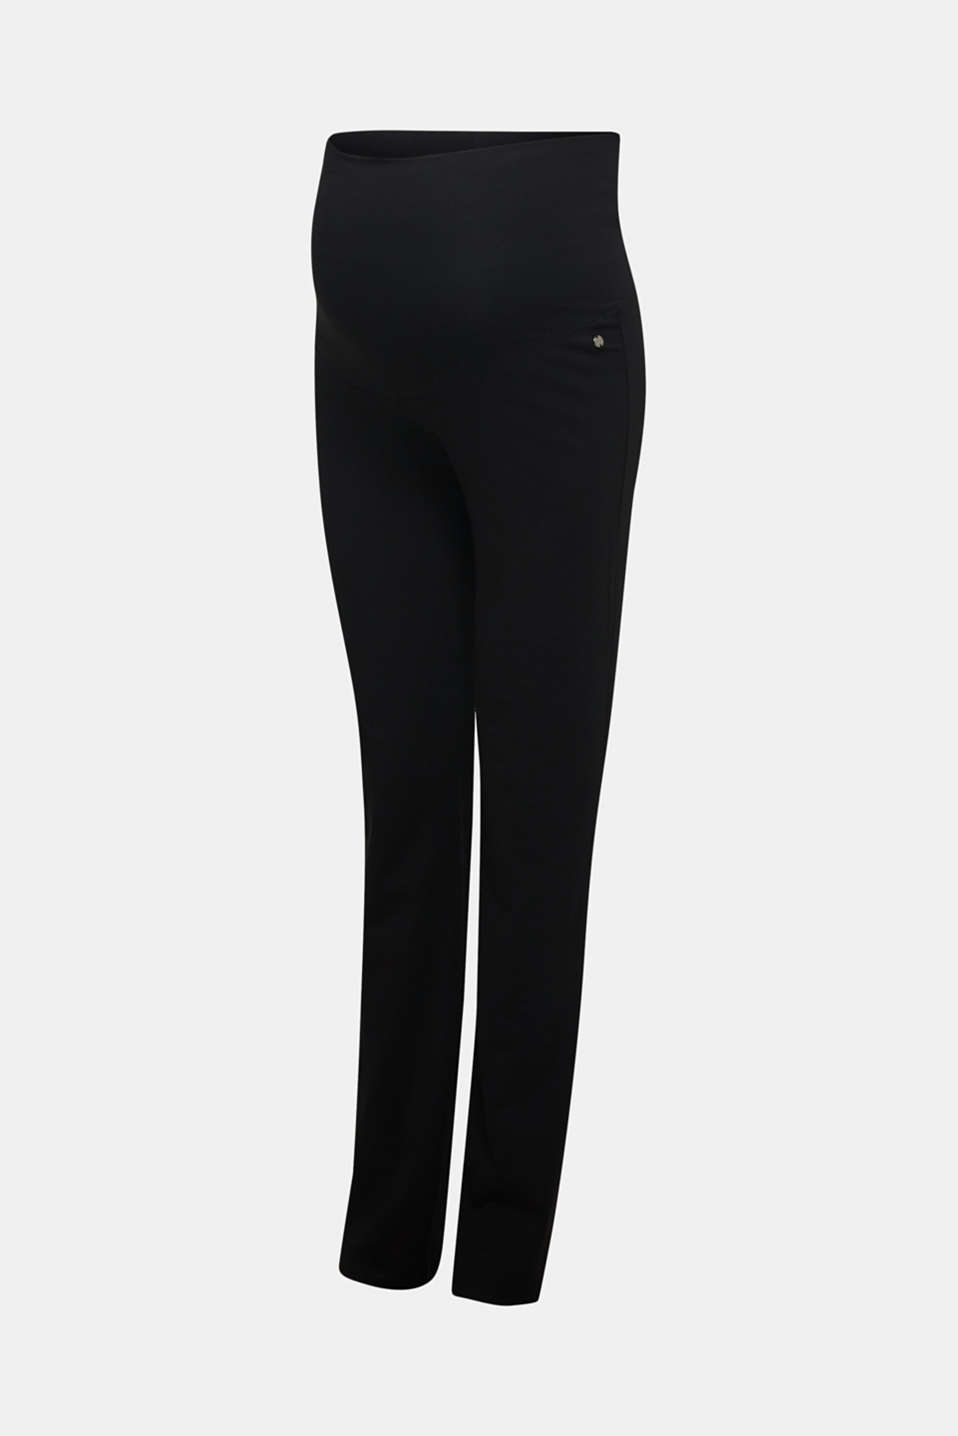 Jersey trousers with an over-bump waistband, LCBLACK, detail image number 3